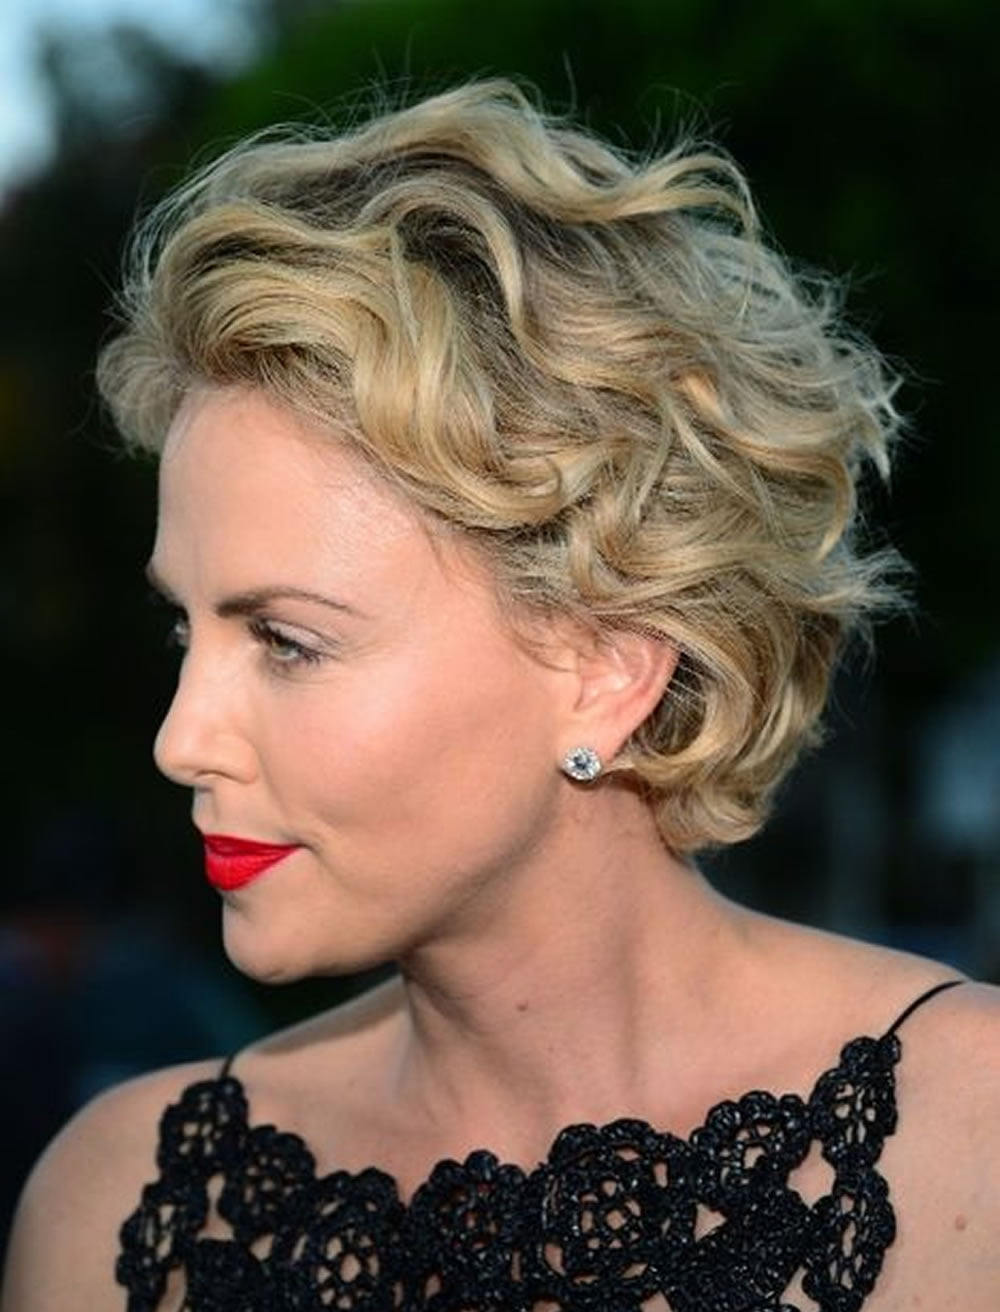 how to make short hair curly